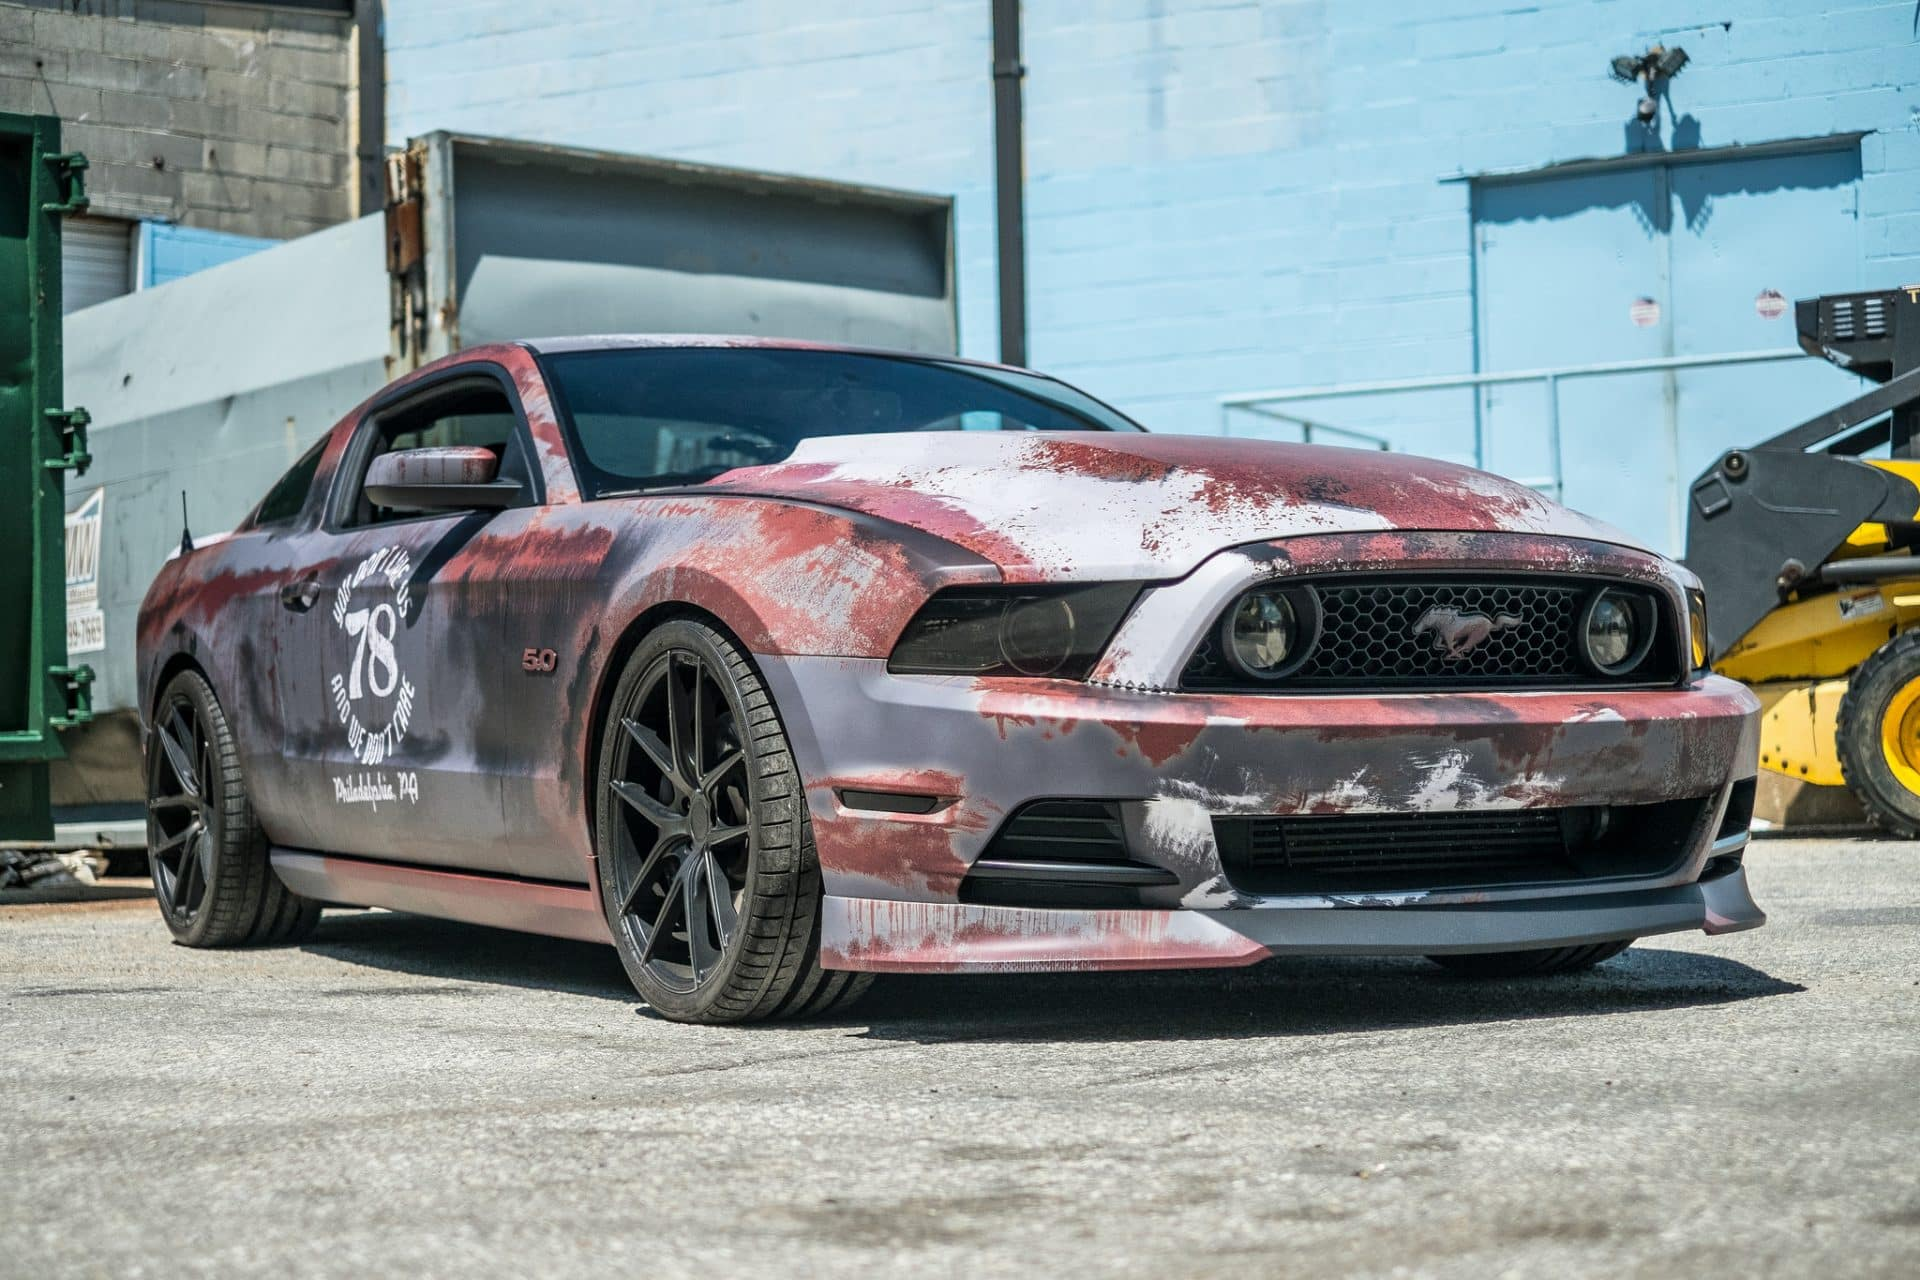 2019 Ford Mustang >> Rust Wrap Design Ford Mustang   Skepple Inc